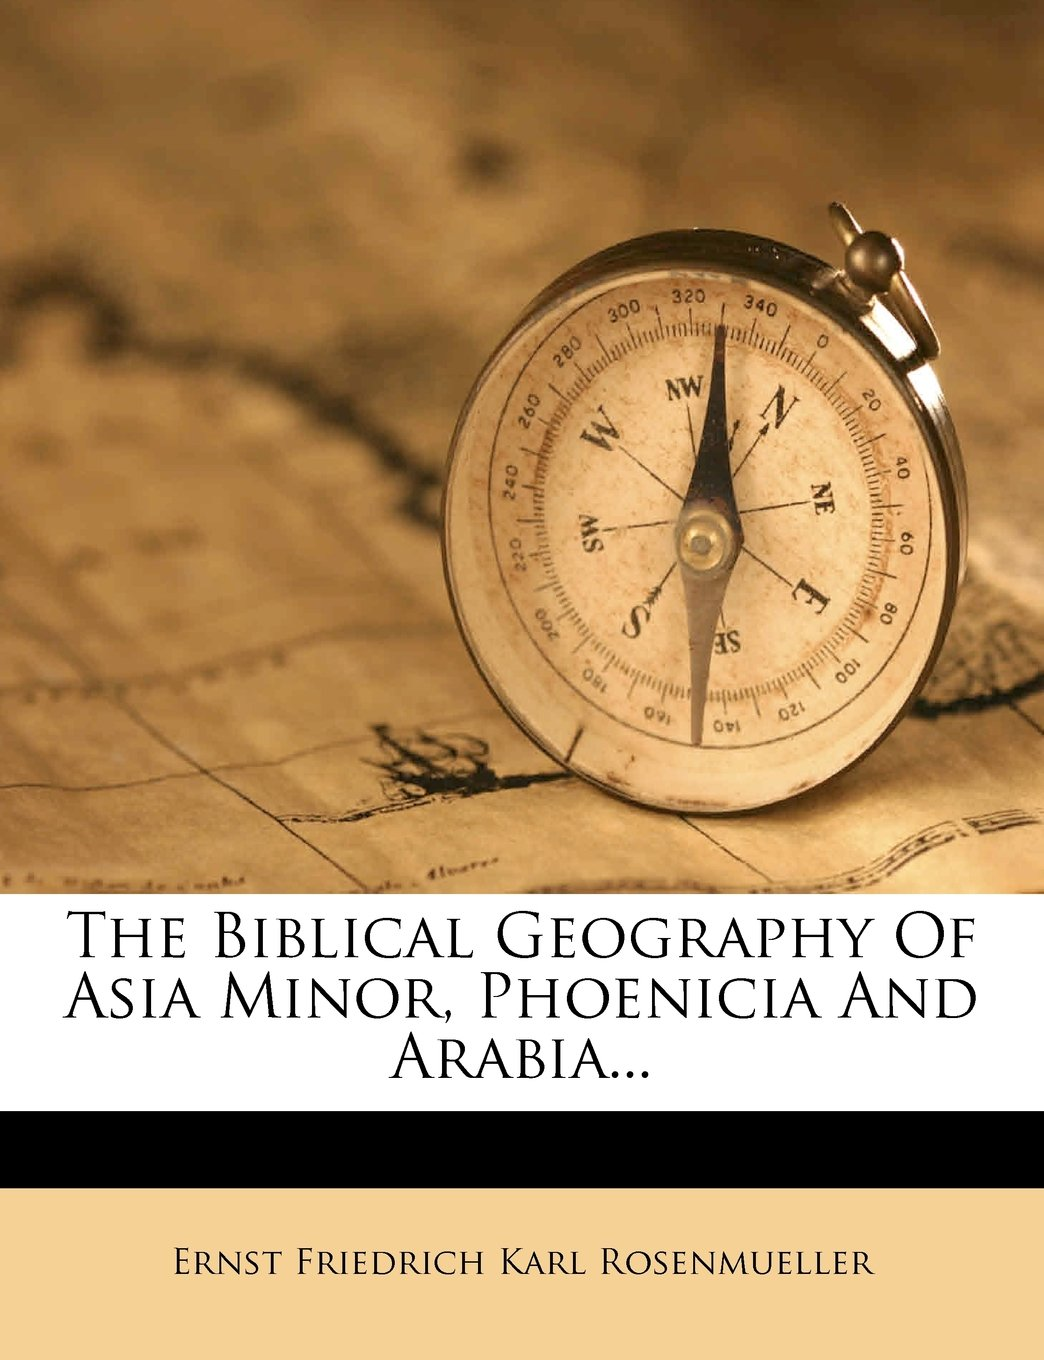 The Biblical Geography Of Asia Minor, Phoenicia And Arabia... PDF